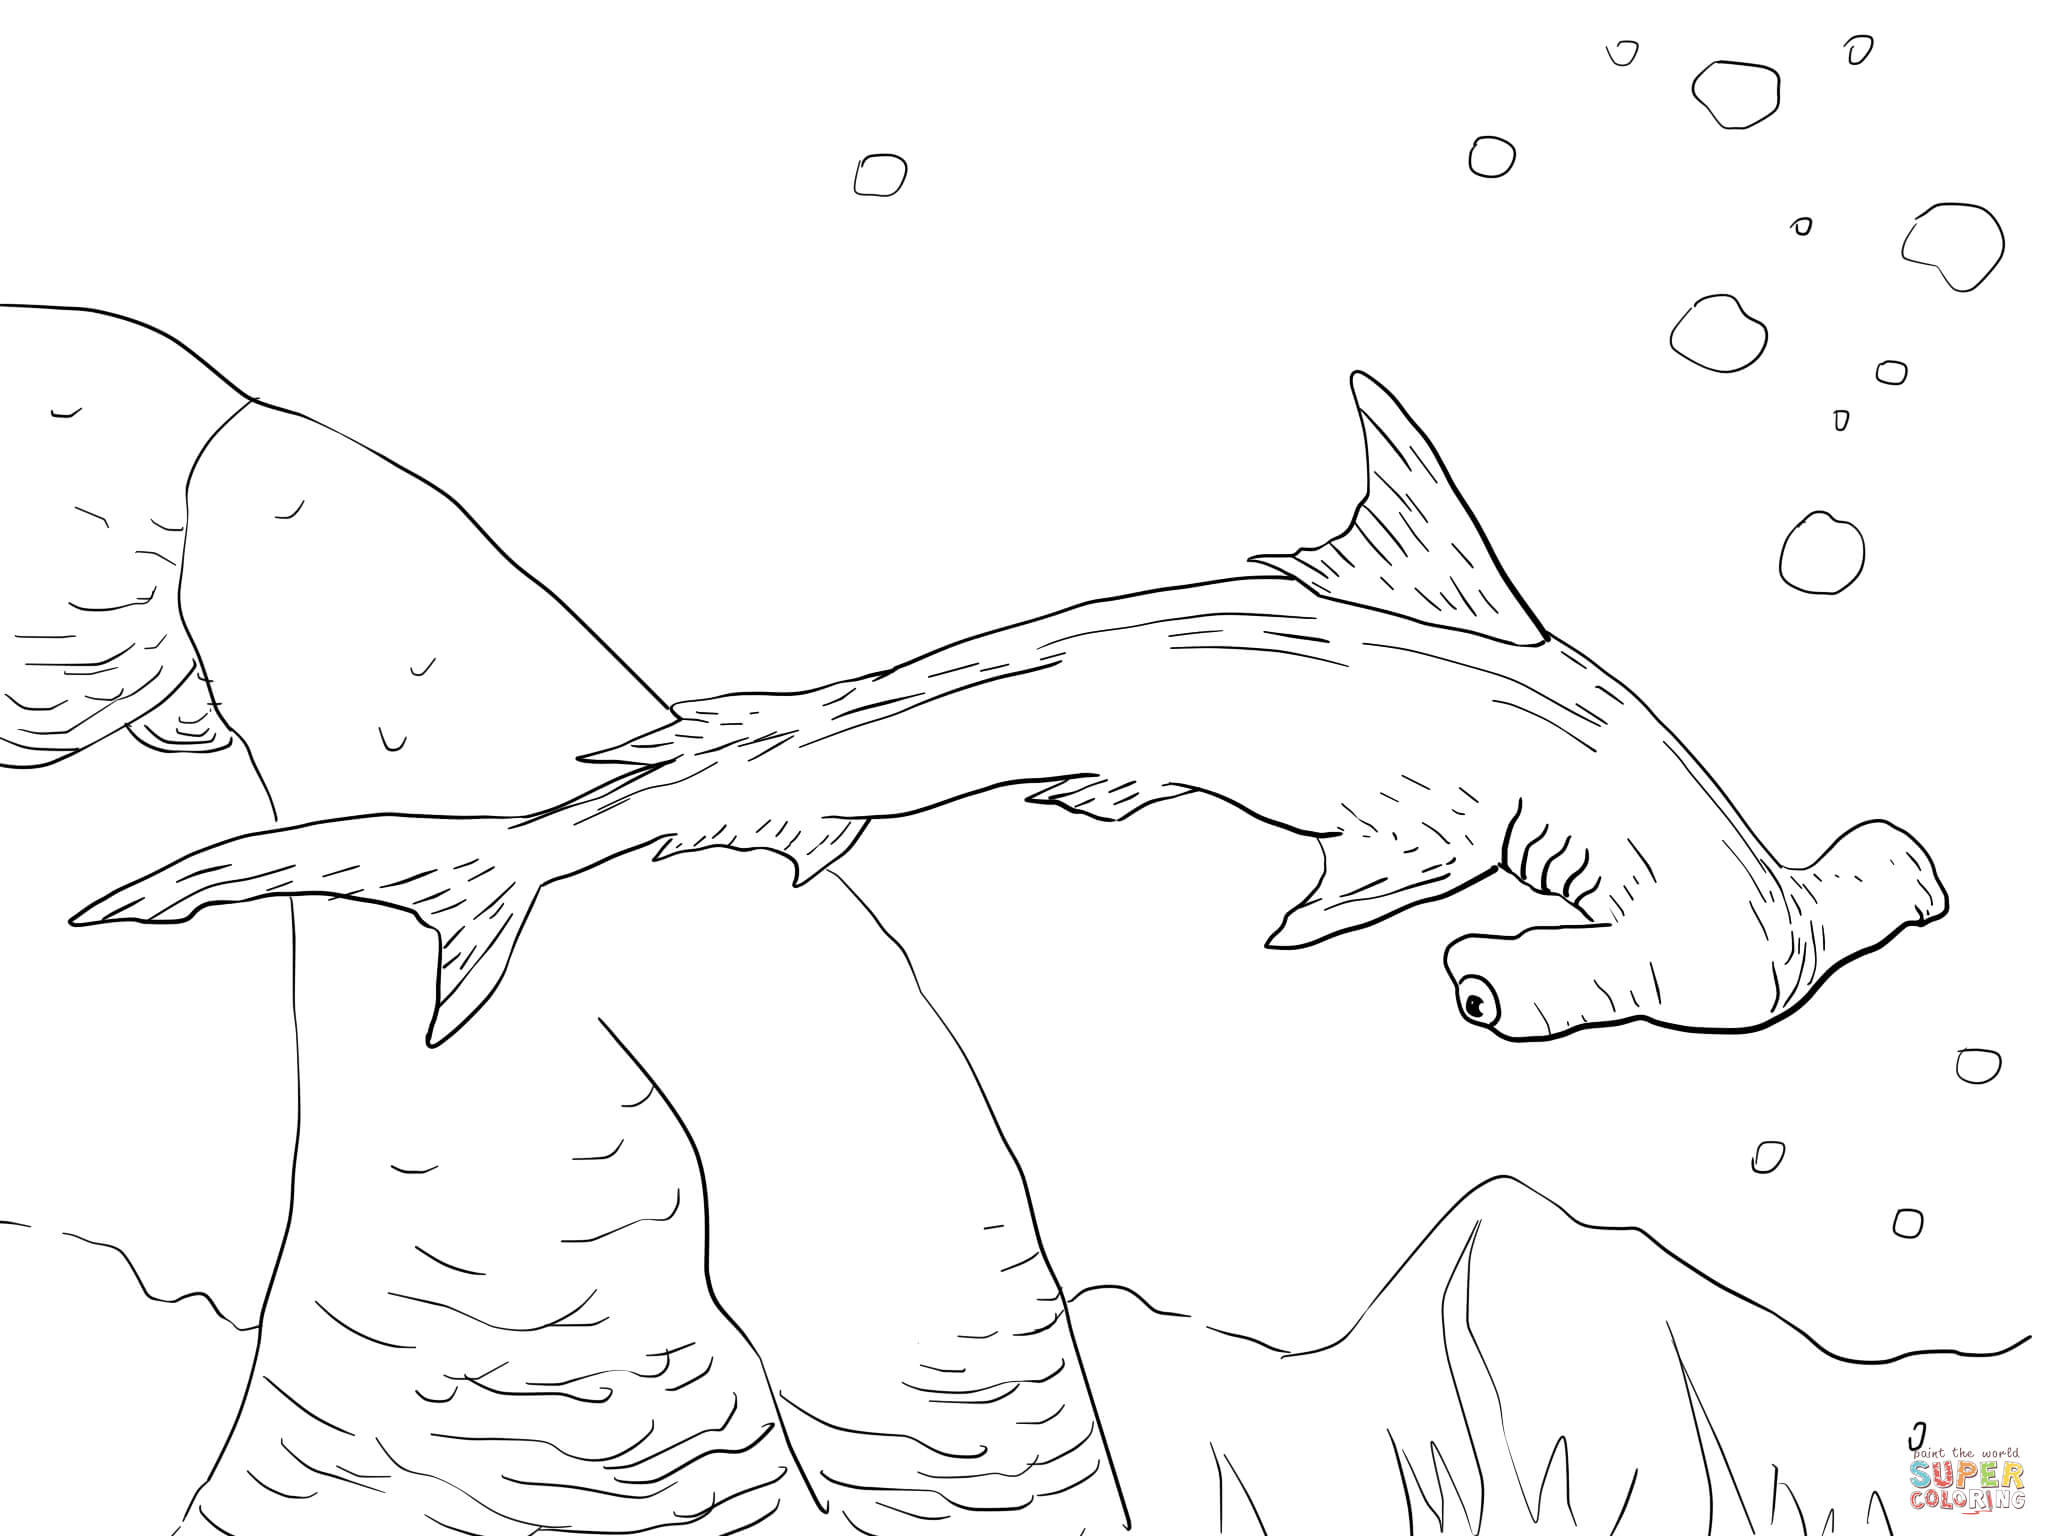 hammerhead shark pictures to color hammerhead shark coloring pages free coloring home color to pictures hammerhead shark